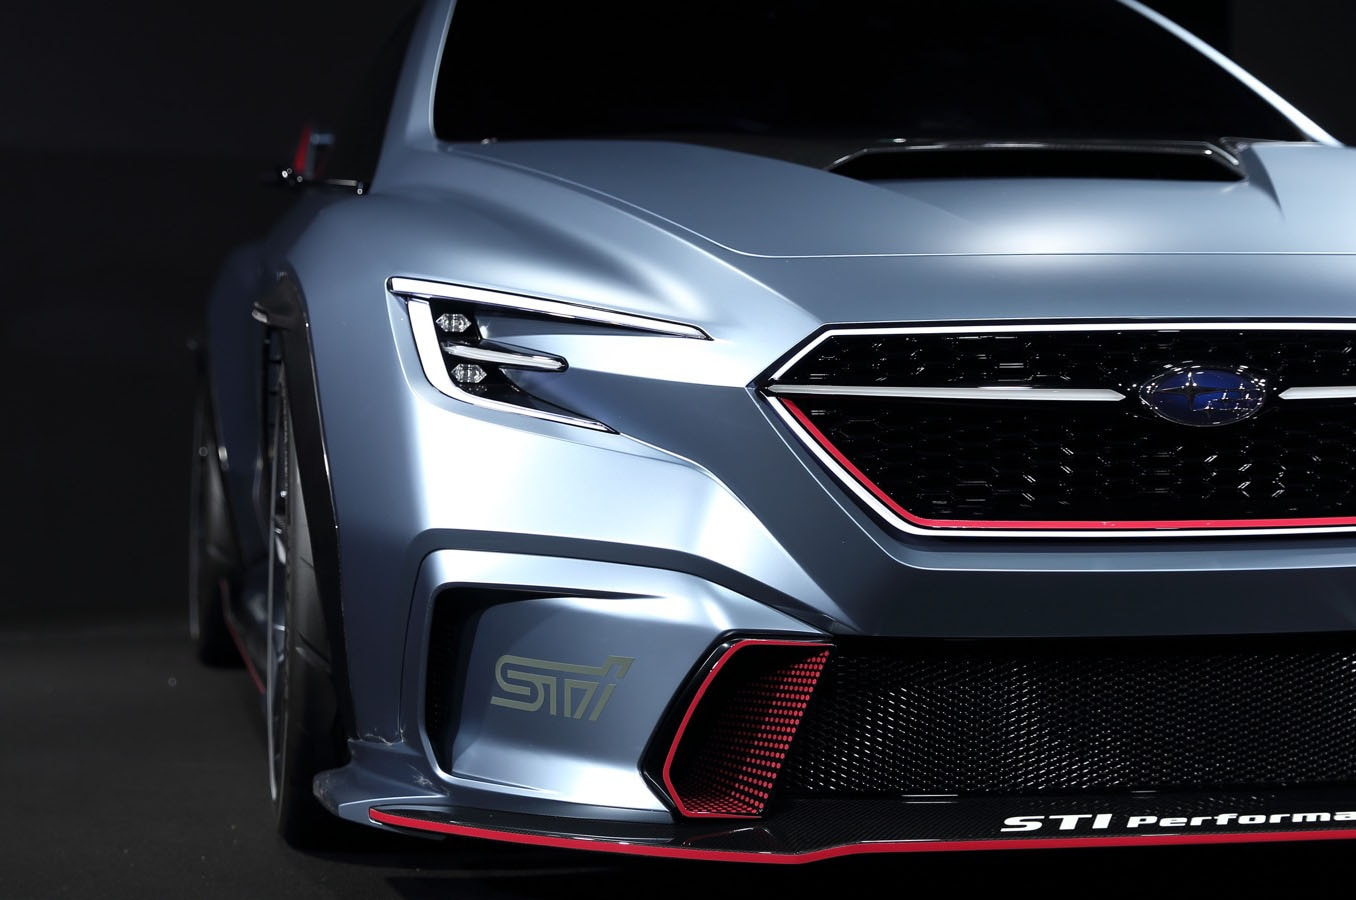 2018 Wrx 0 To 60 >> Subaru VIZIV Performance STI Concept Rocks | Automobile Magazine